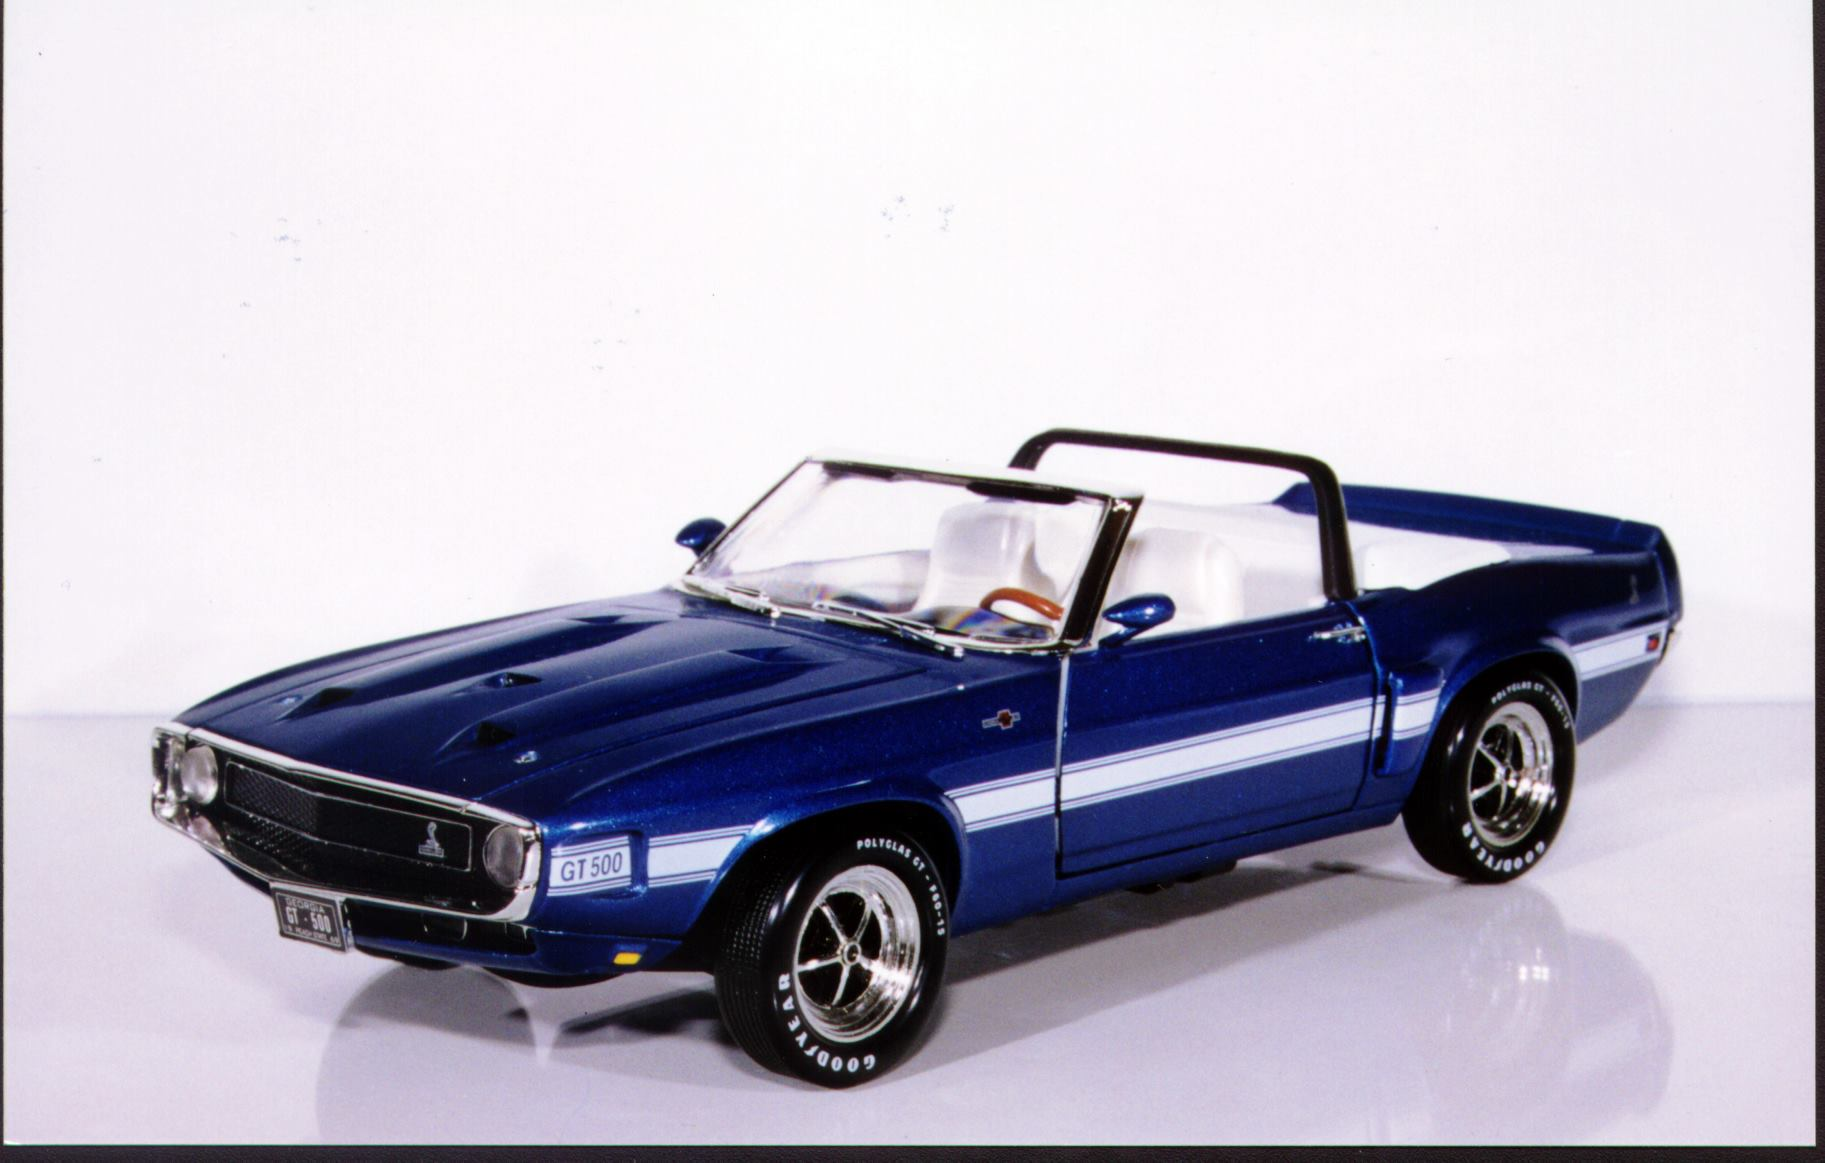 118 ertl ford mustang 69 shelby gt 500 convertible peachstate collectibles gmp limited edition 1 2500